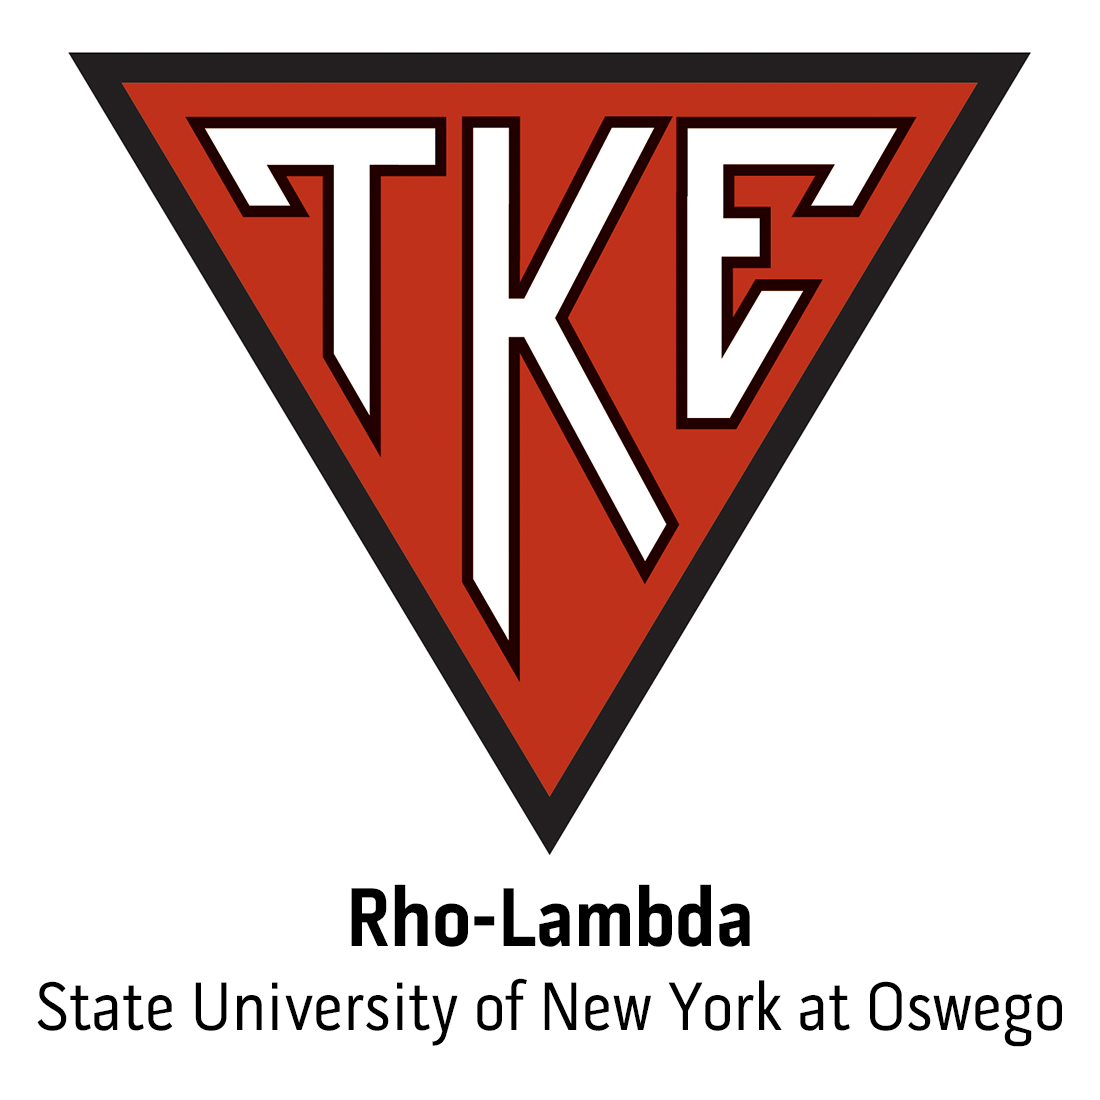 Rho-Lambda Chapter at State University of New York at Oswego